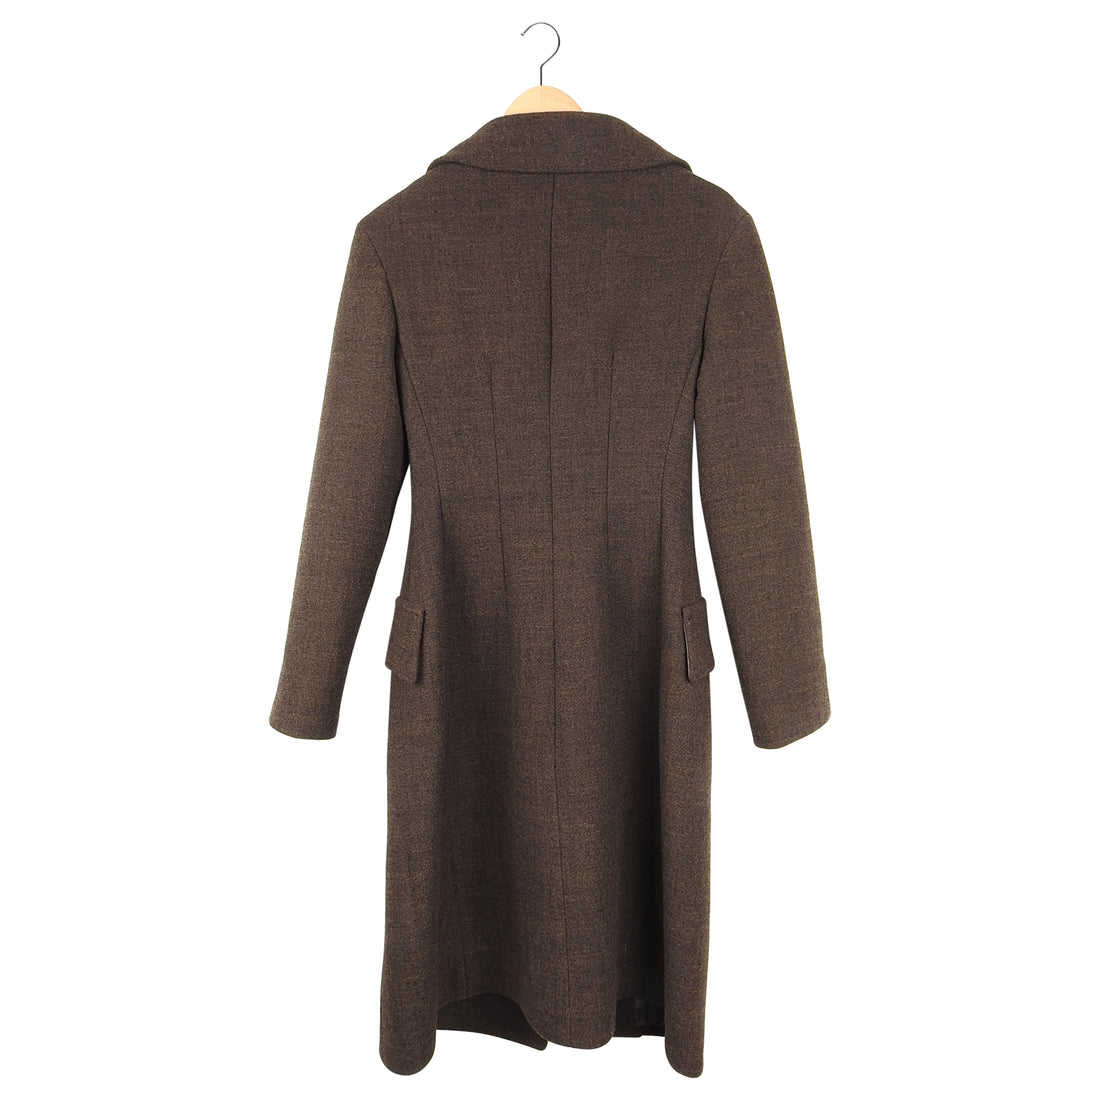 Prada Brown Fitted Wool Coat - IT38 / USA 2 / XS